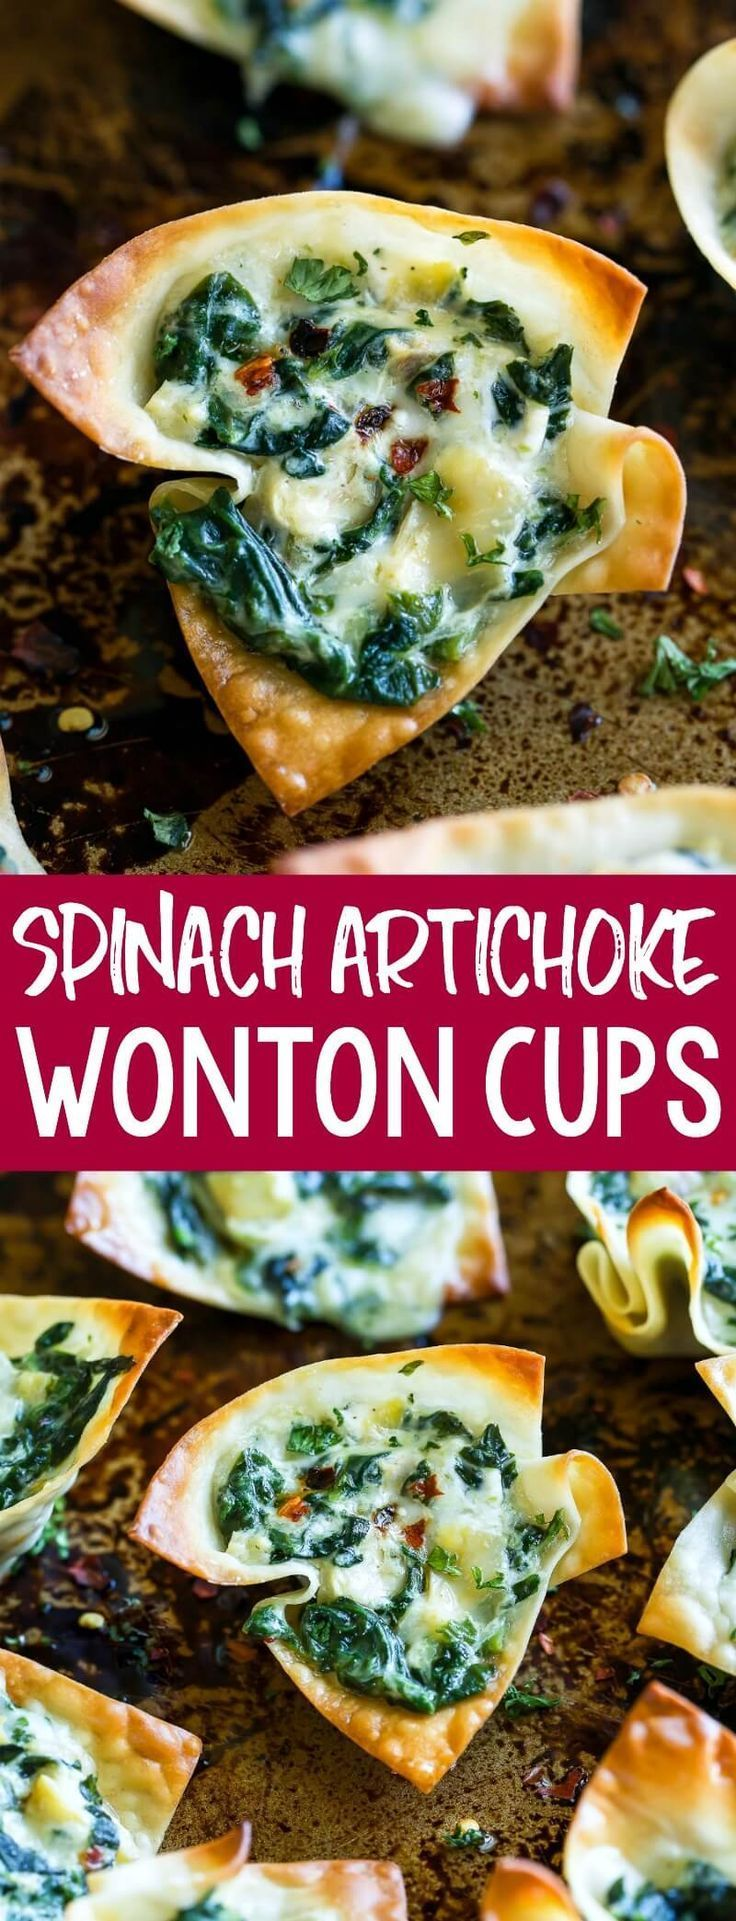 Baked Spinach Artichoke Won-ton Cups - Peas And Crayons